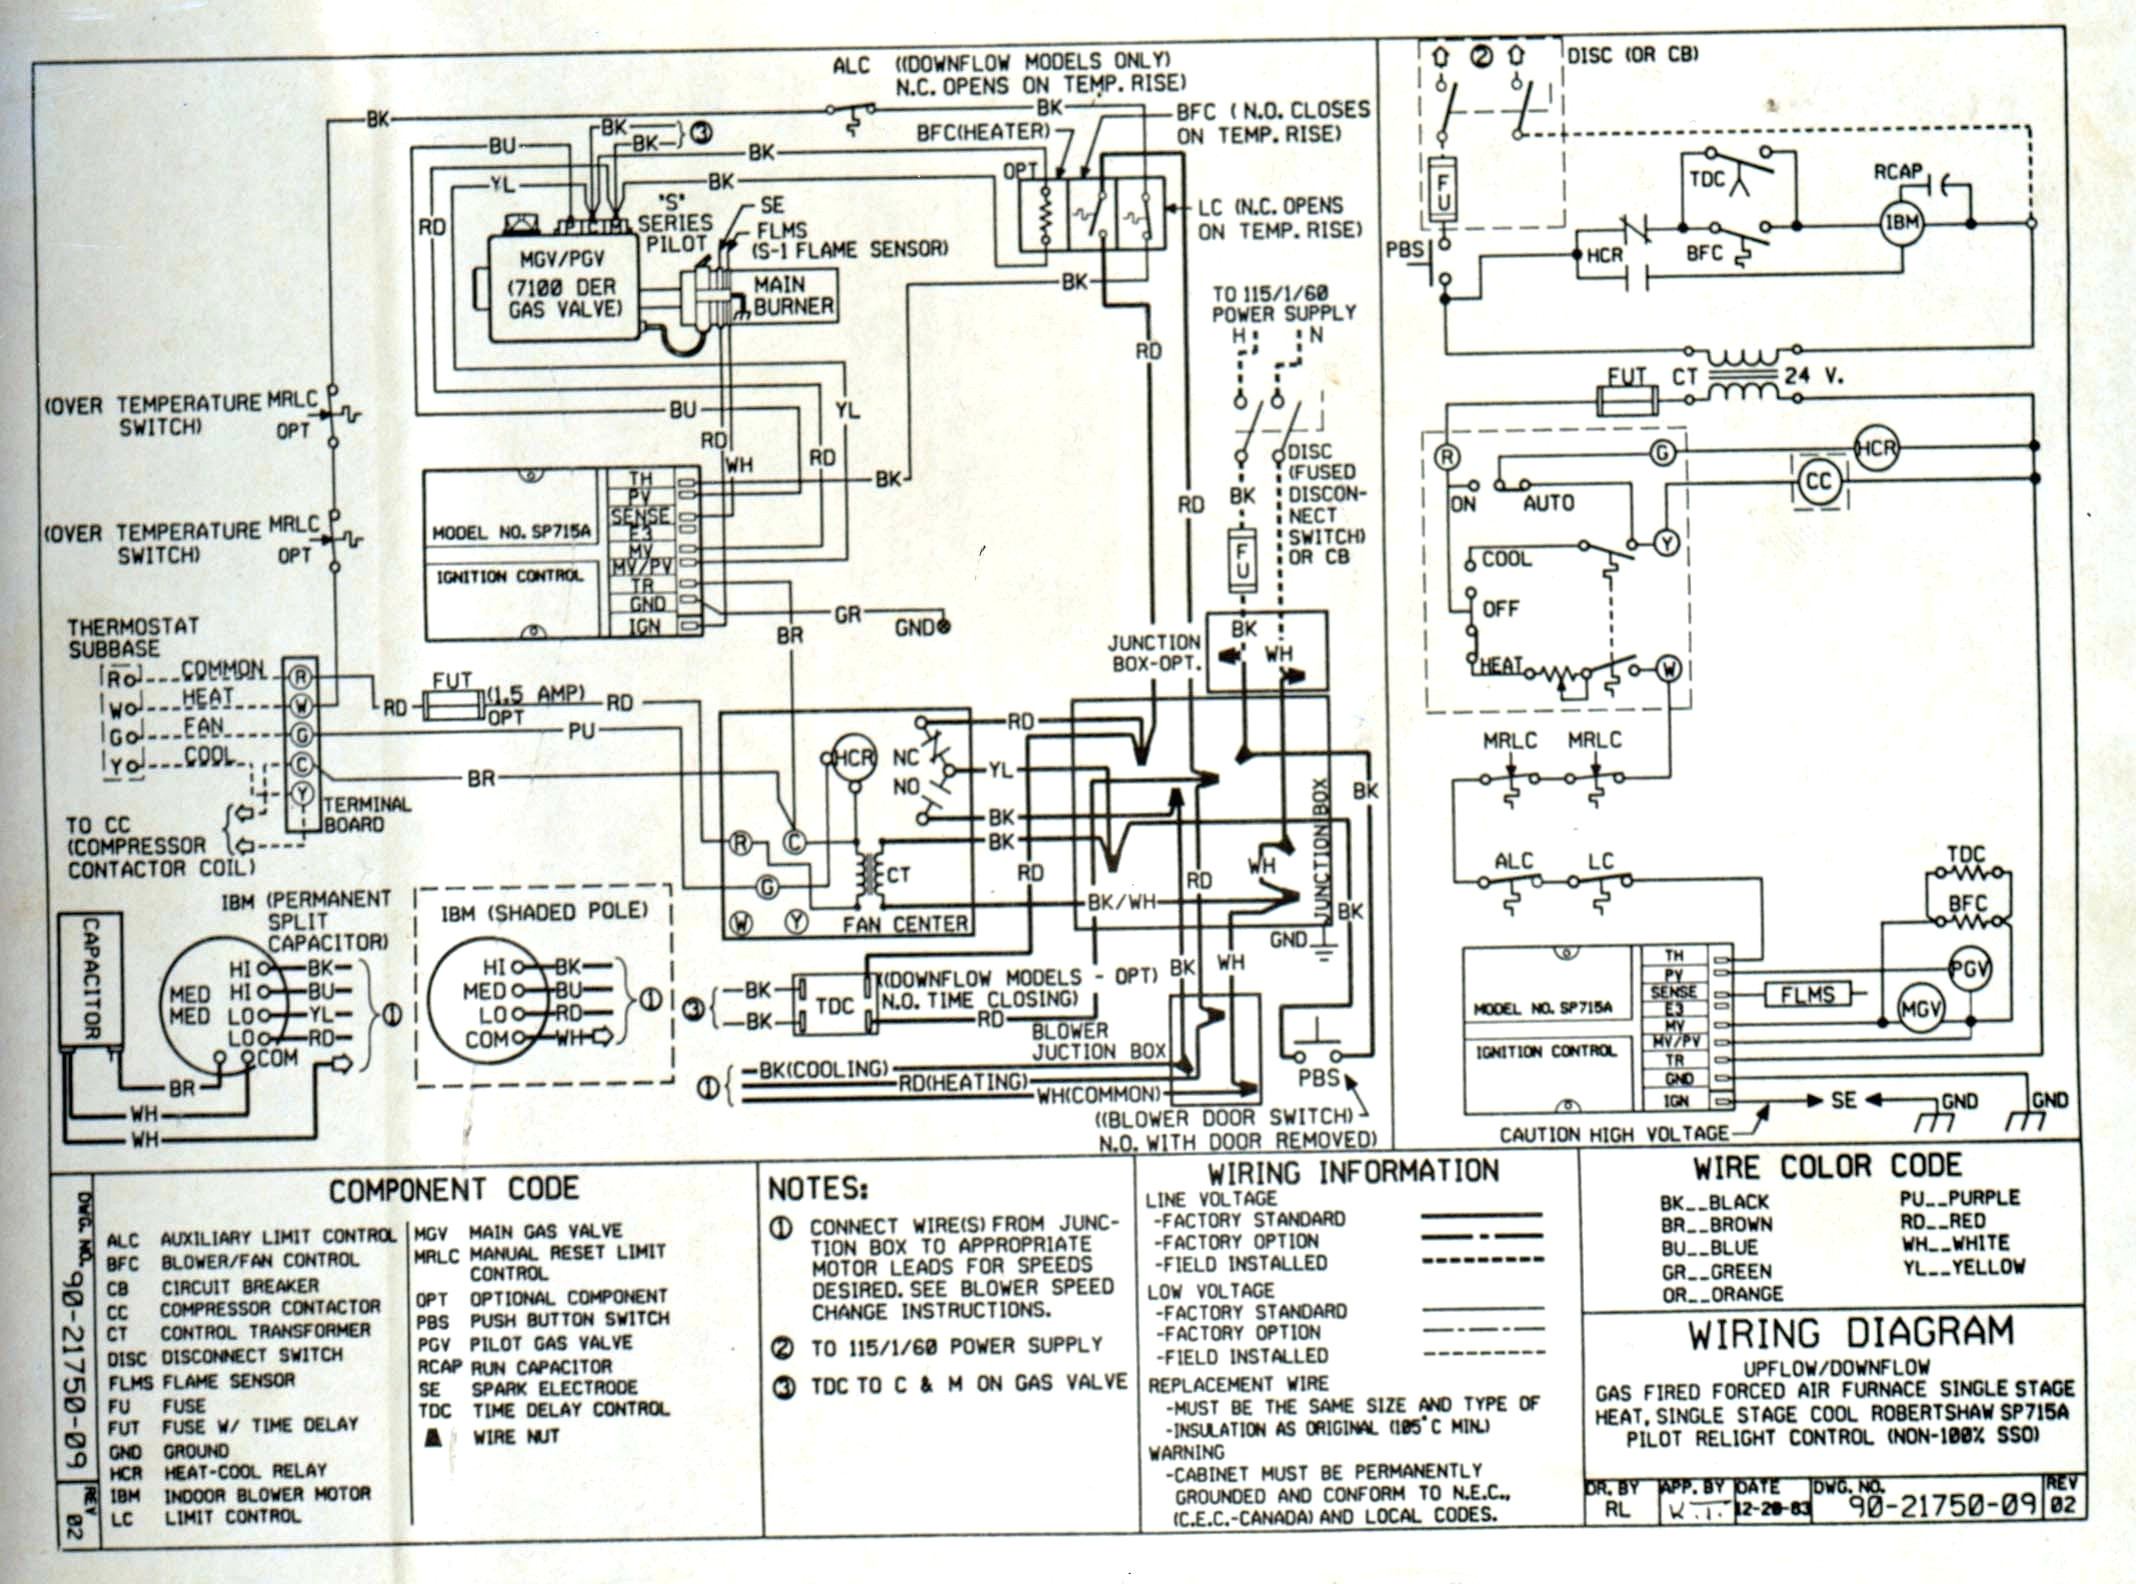 york package unit wiring diagram Download-York Electric Furnace Wiring Diagram Schematic Gallery Diagrams Incredible Package Unit 8 10-h